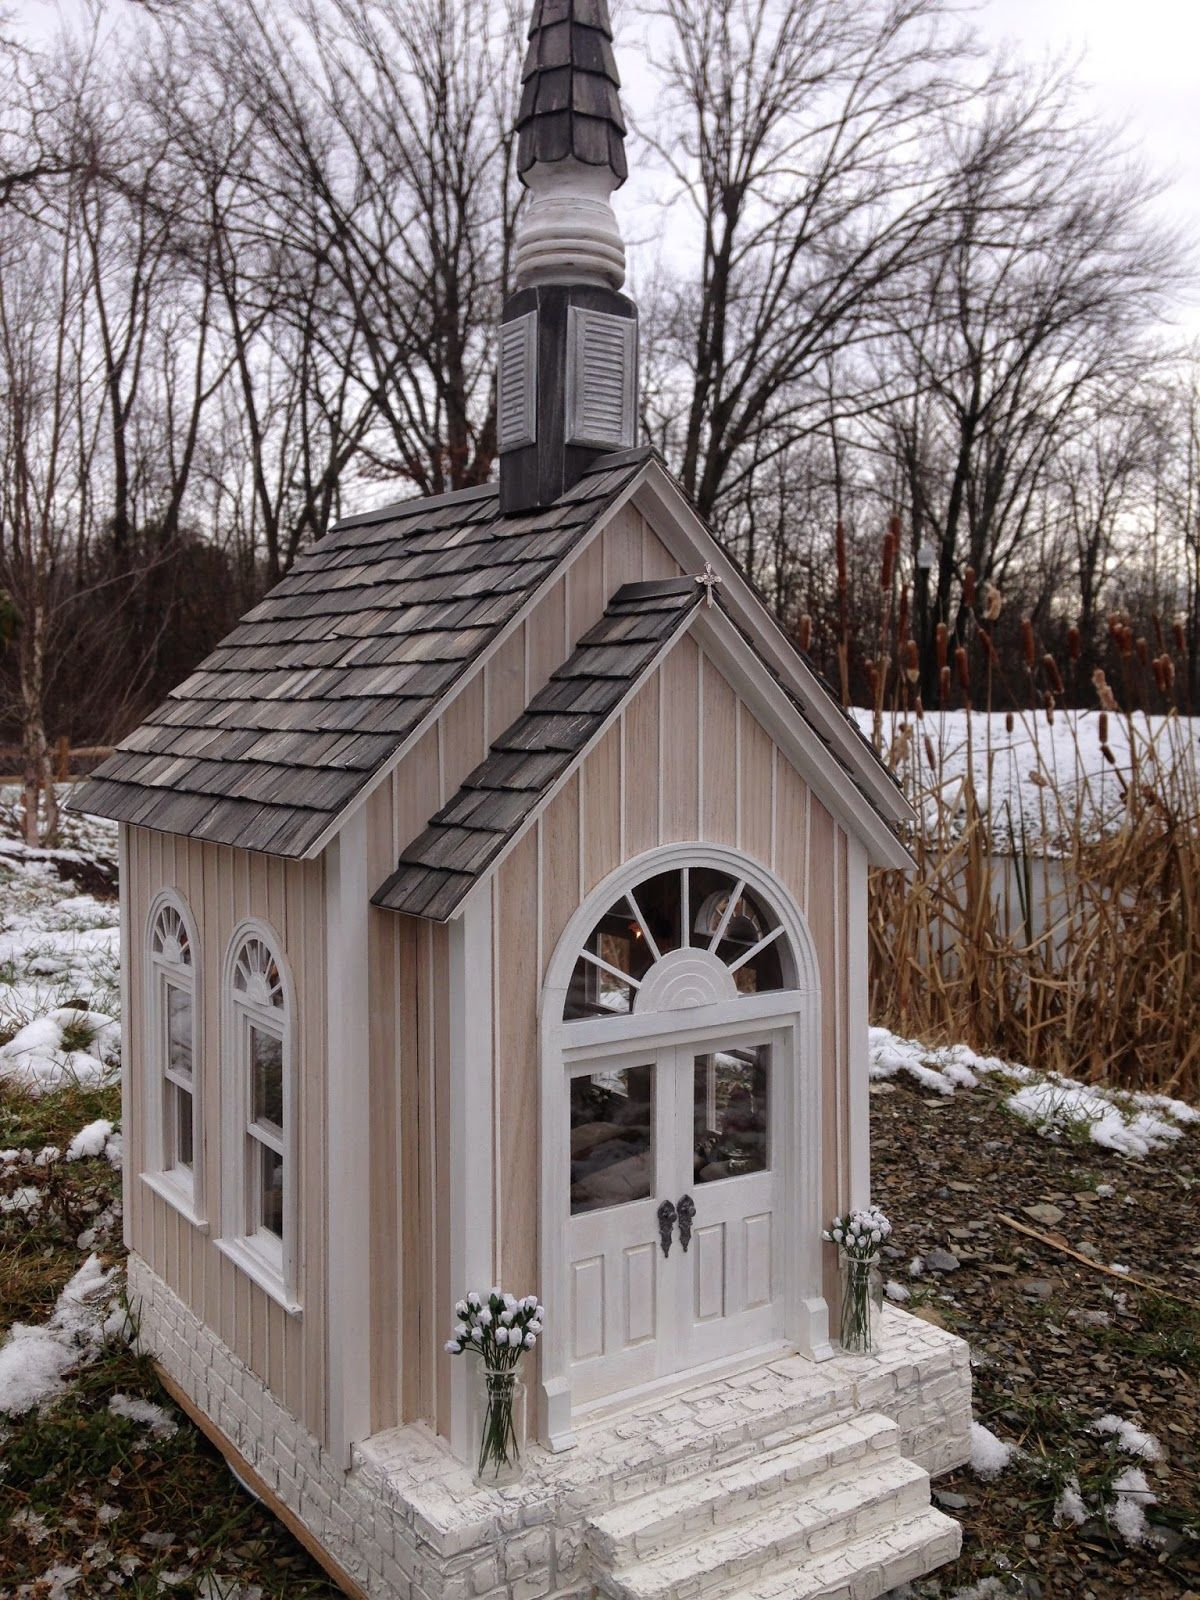 1:12 Scale dollhouse miniature country wedding chapel set for a simple wedding...Outside